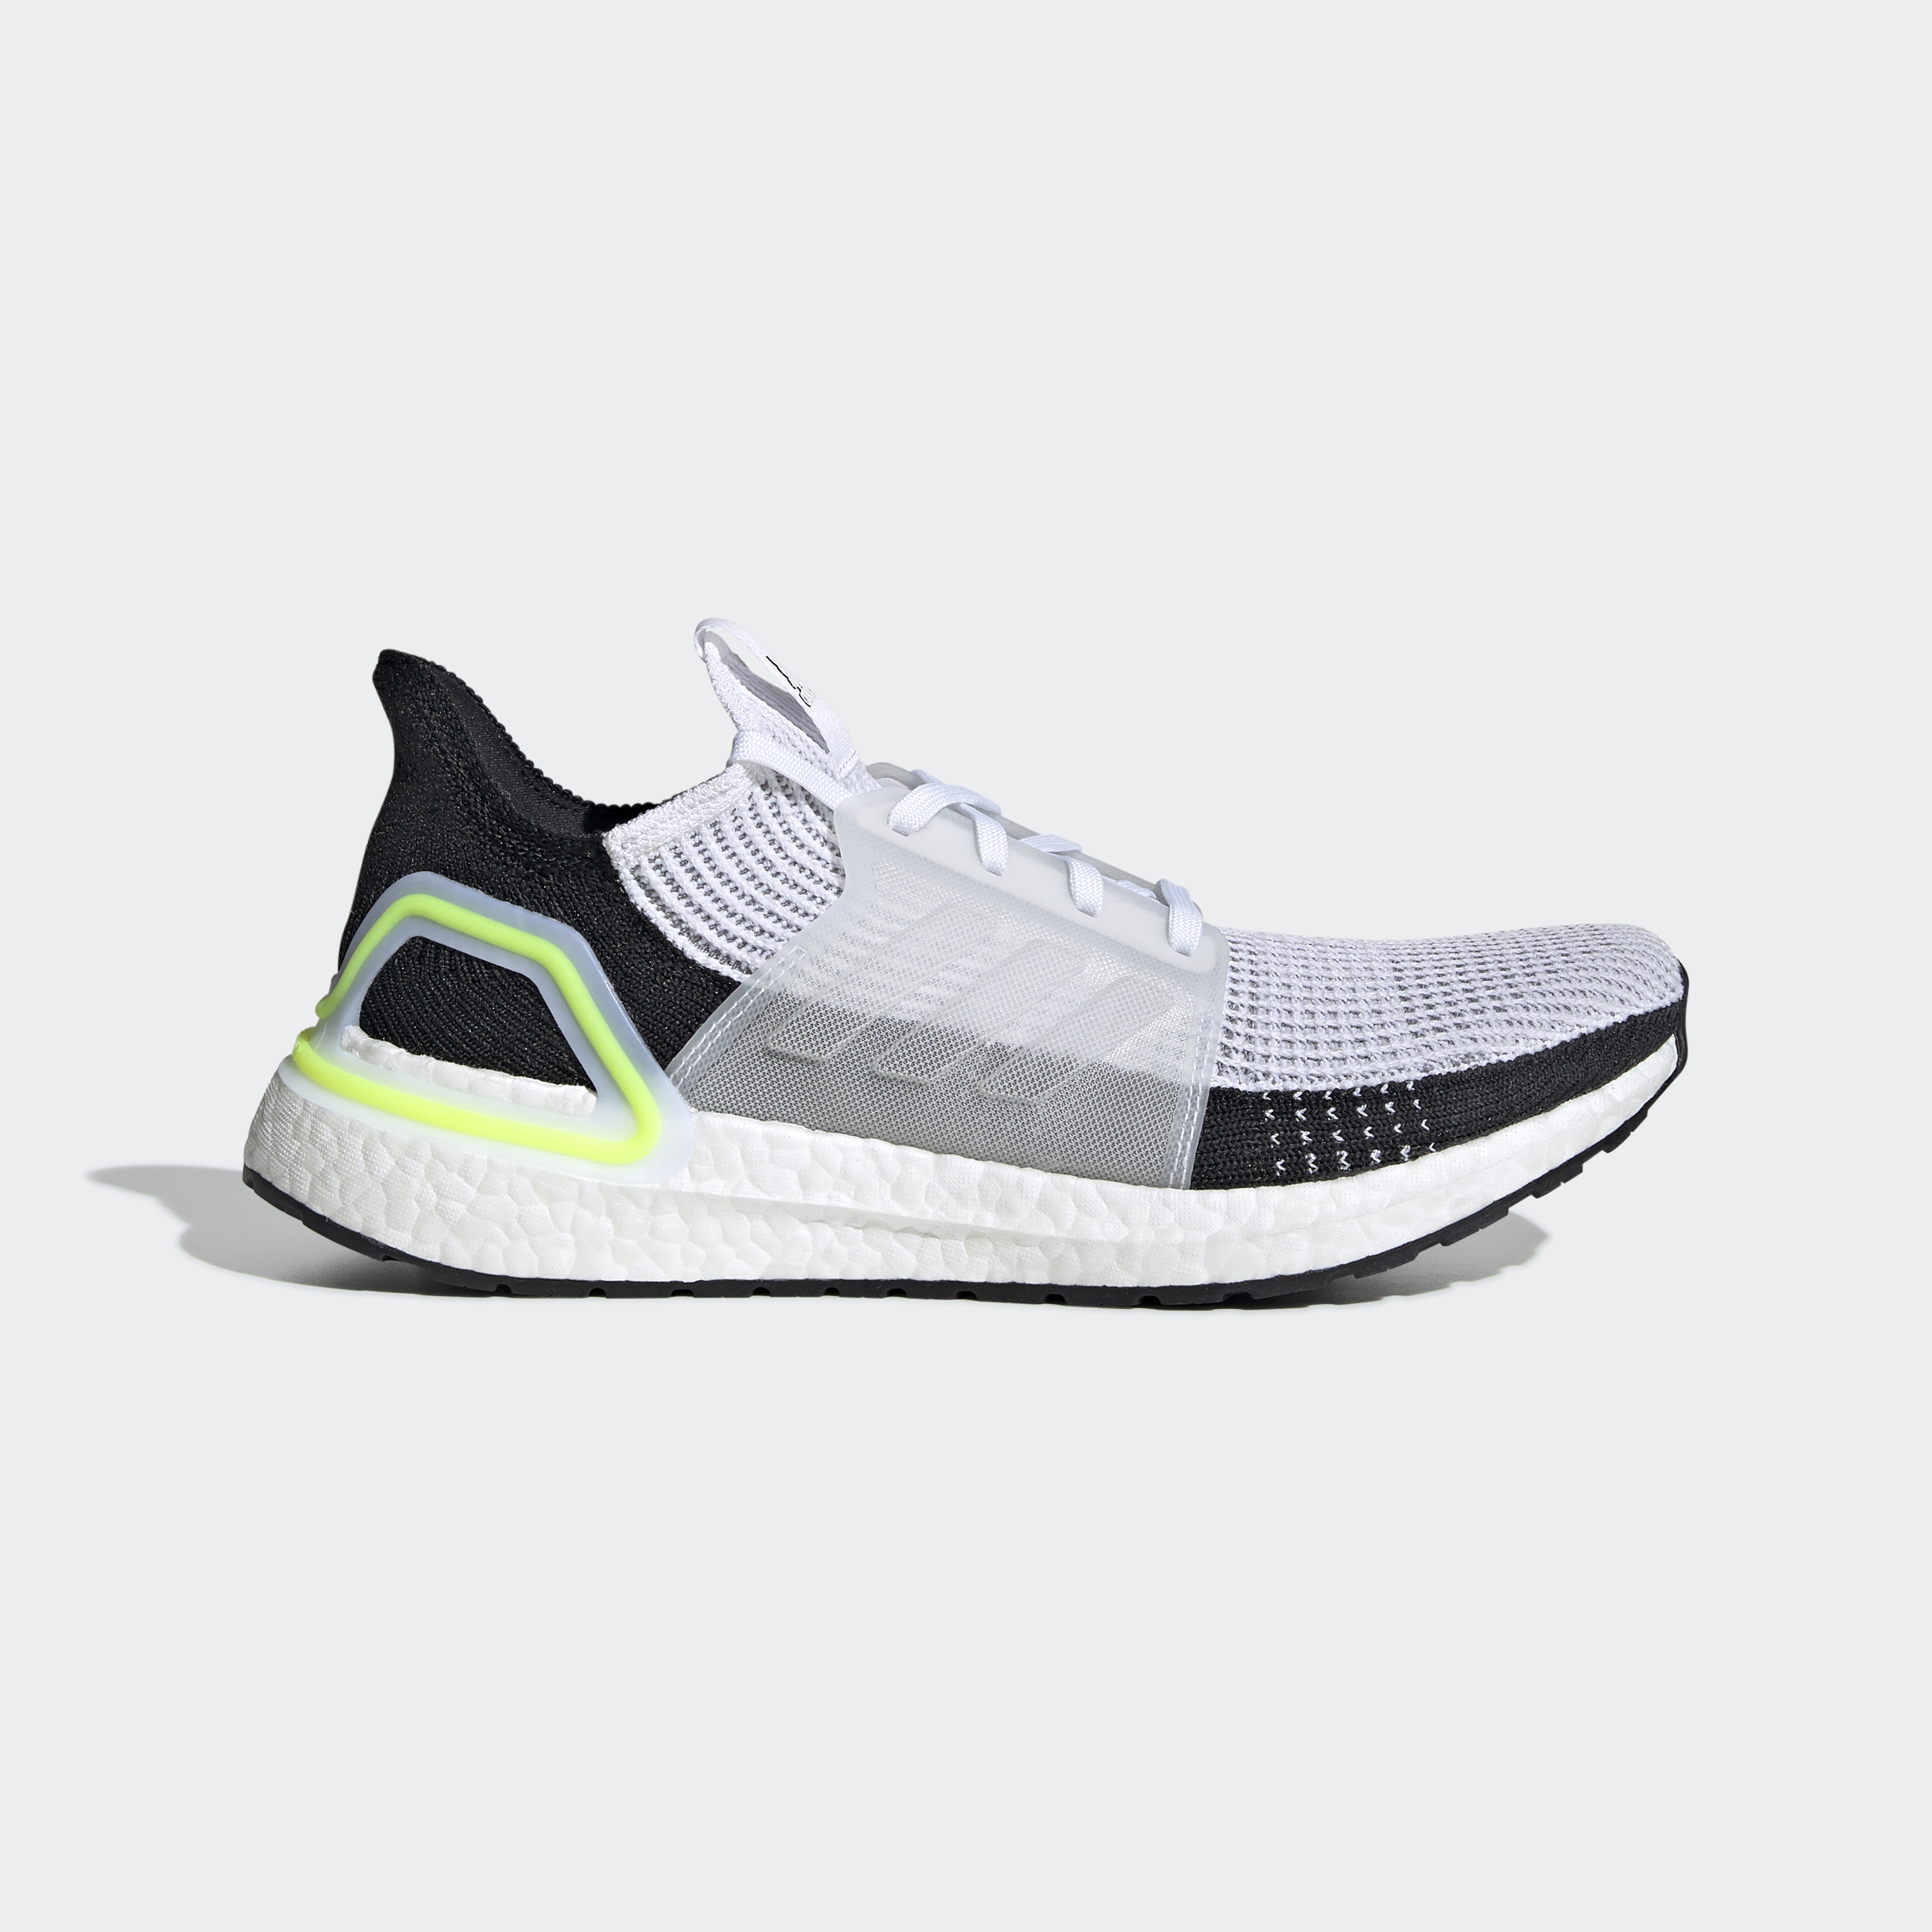 adidas-Ultraboost-19-Shoes-Athletic-amp-Sneakers thumbnail 45